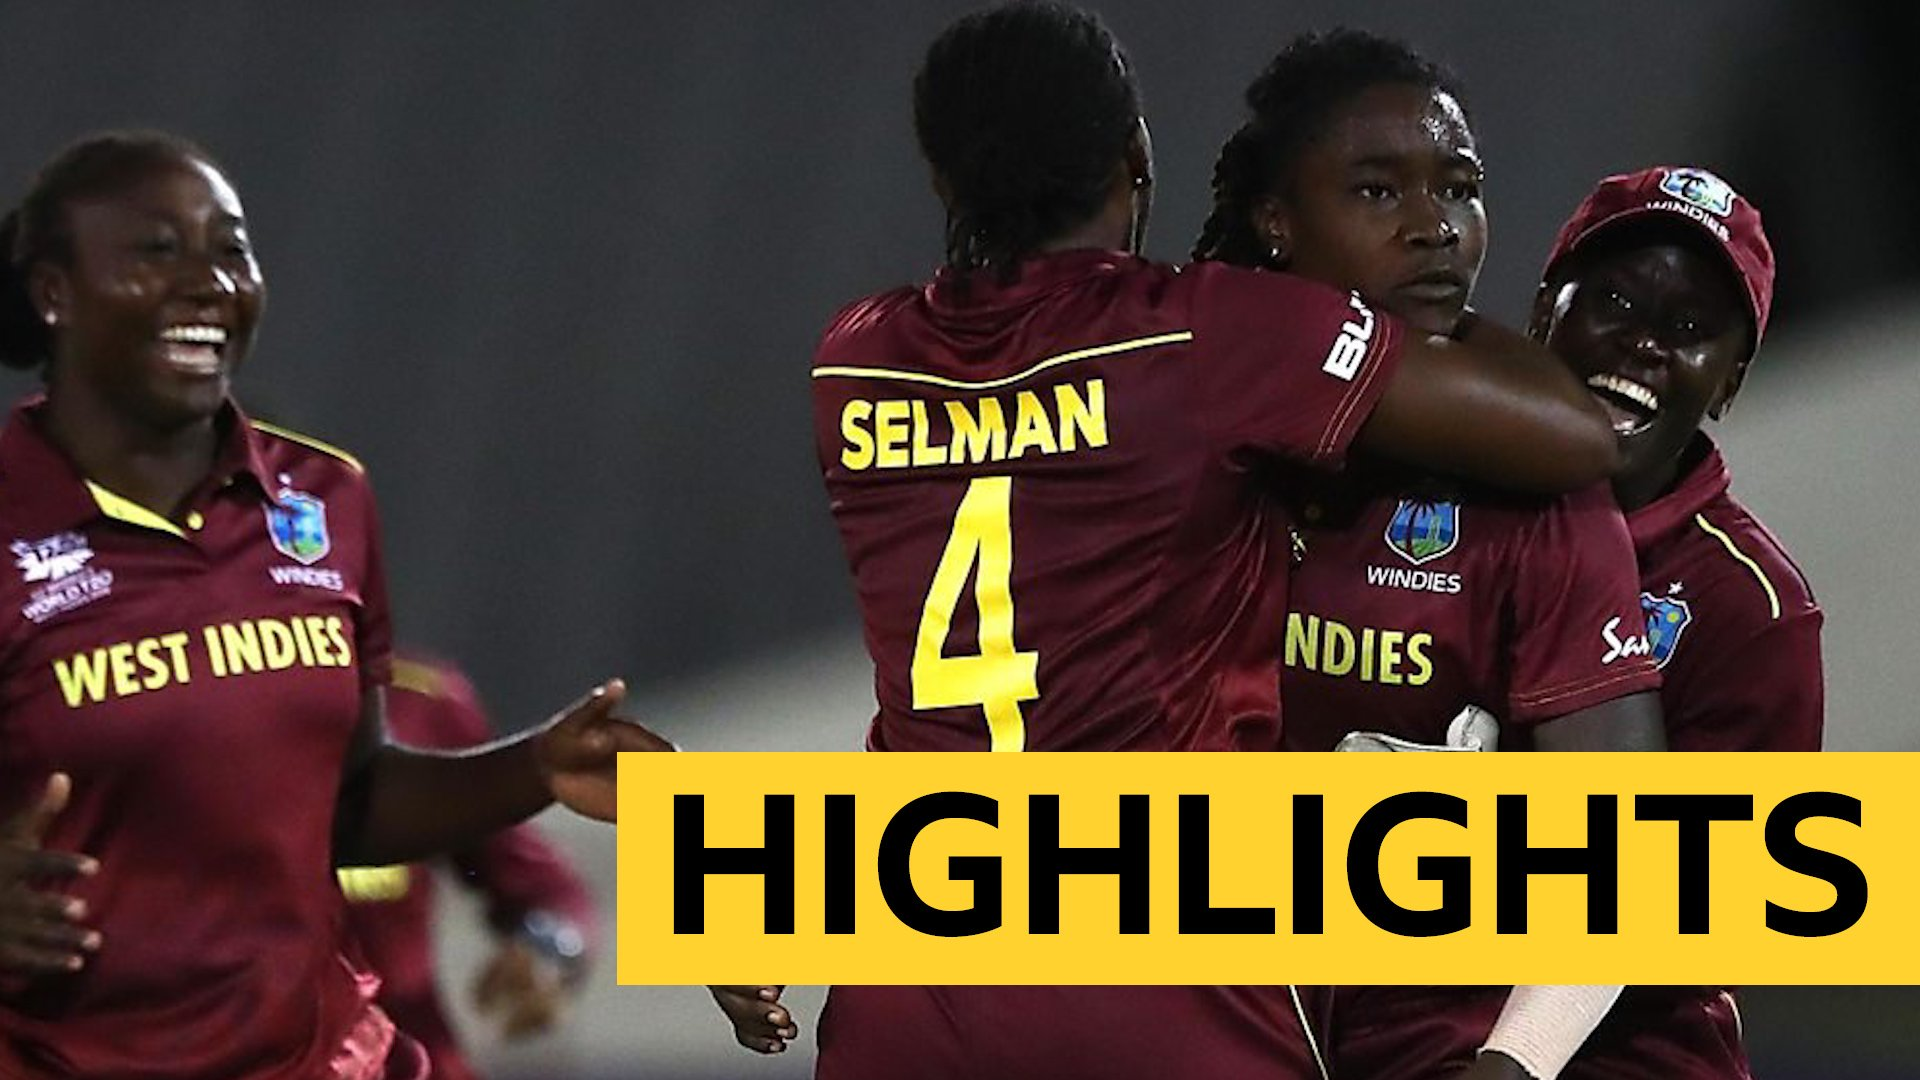 Women's World T20: West Indies show 'Caribbean flair' in South Africa win